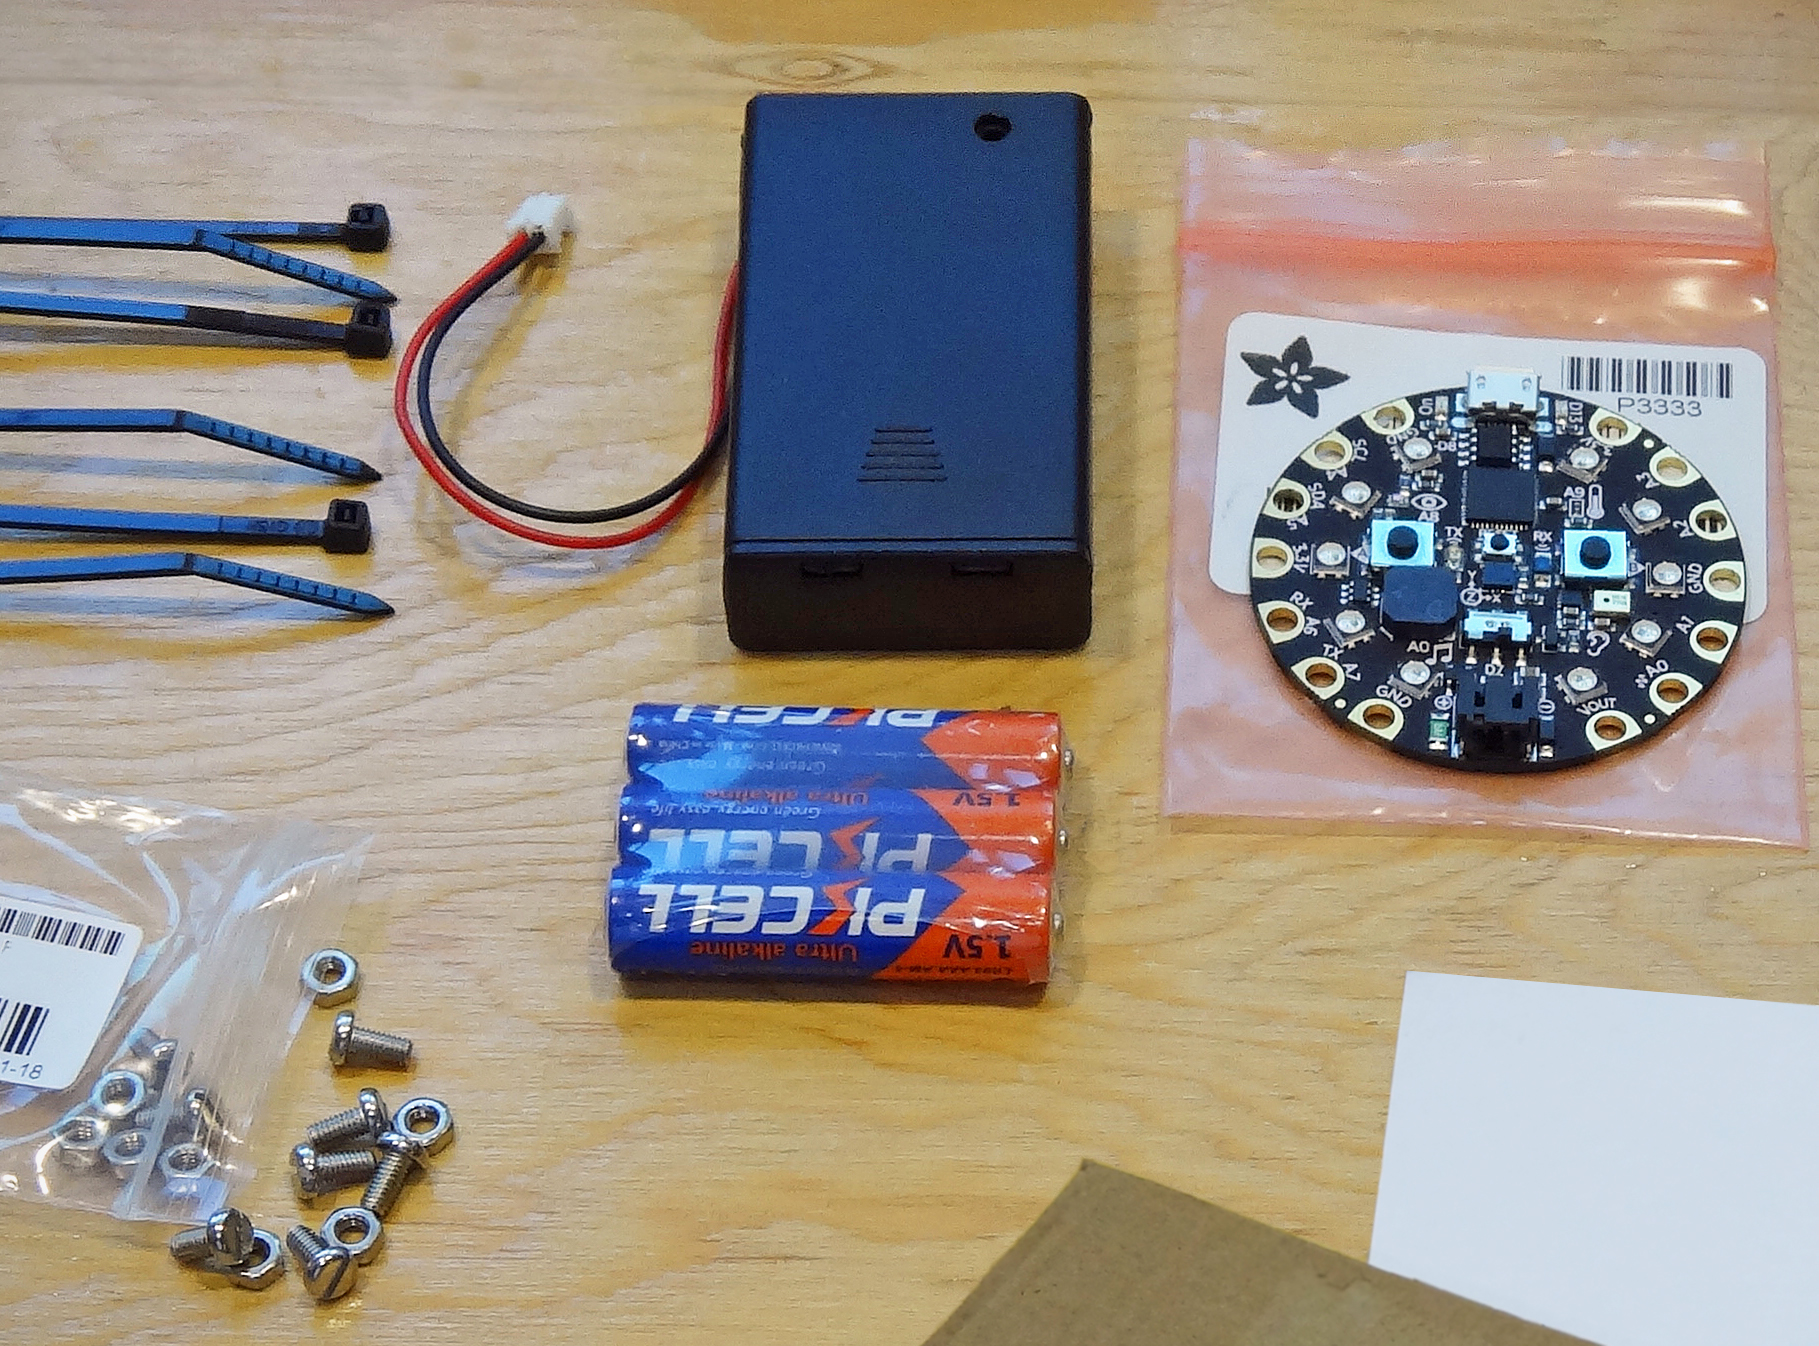 adafruit_products_parts_and_materials.jpg